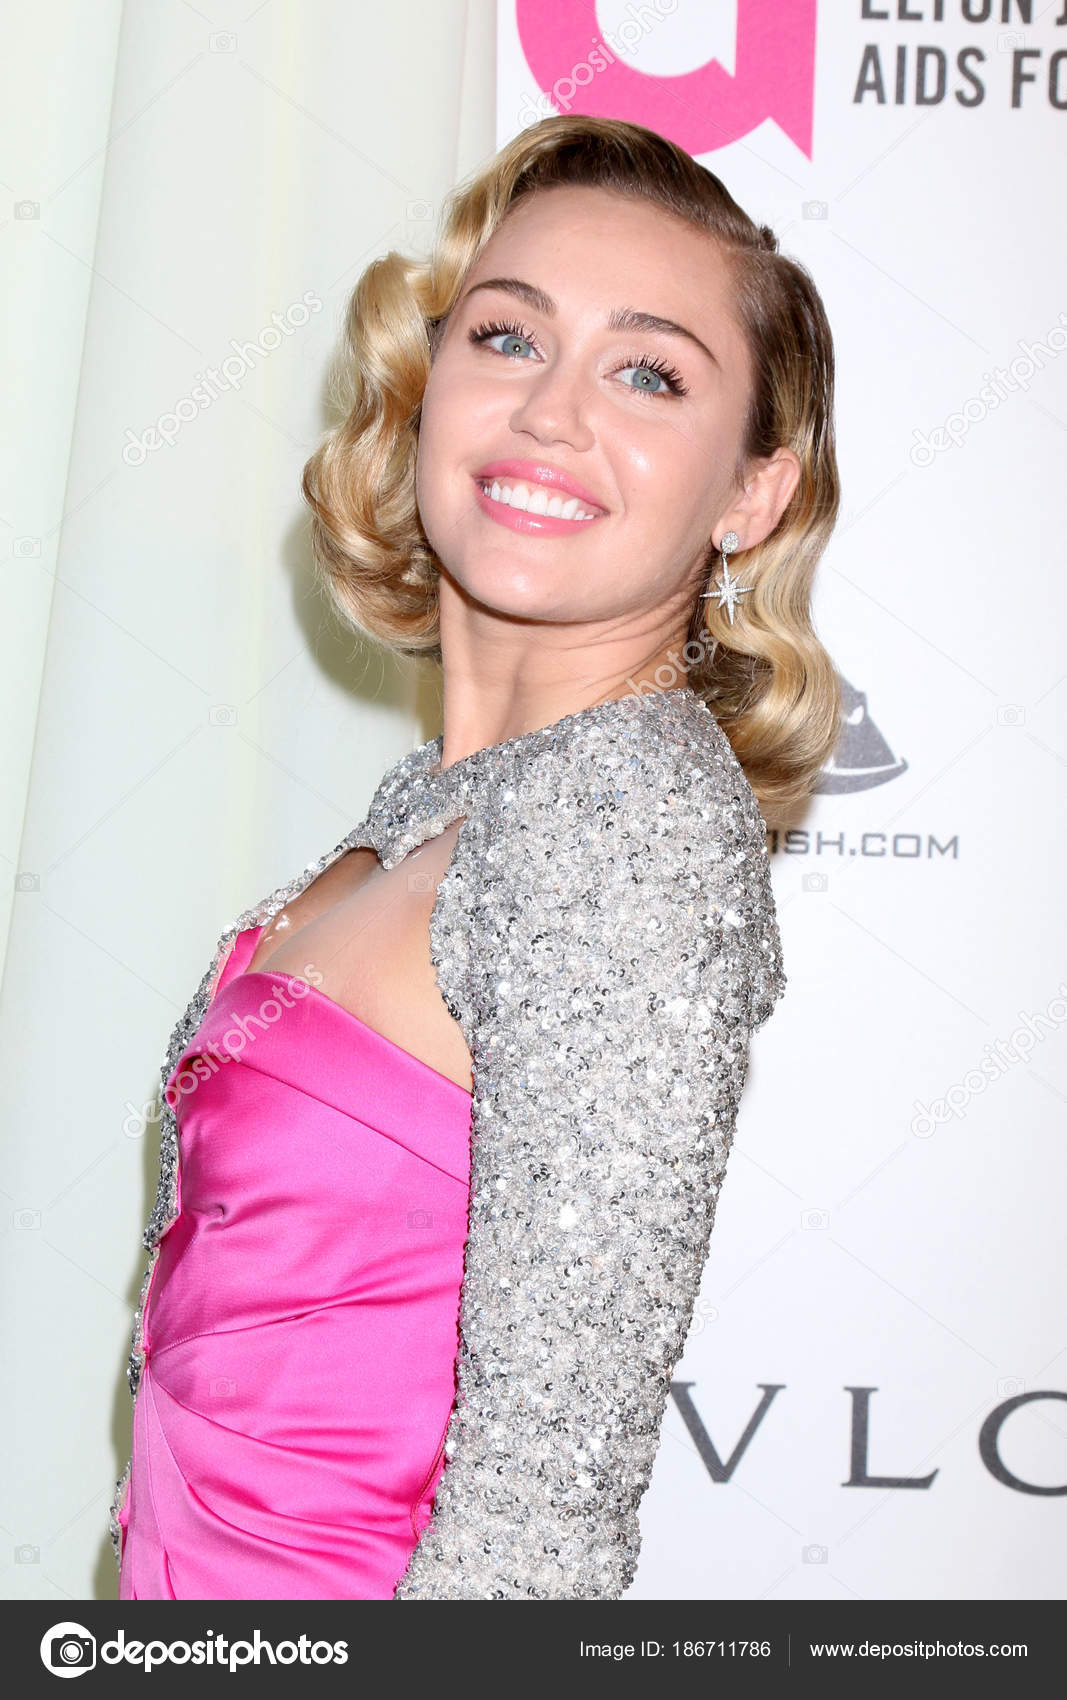 singer miley cyrus – stock editorial photo © jean_nelson #186711786